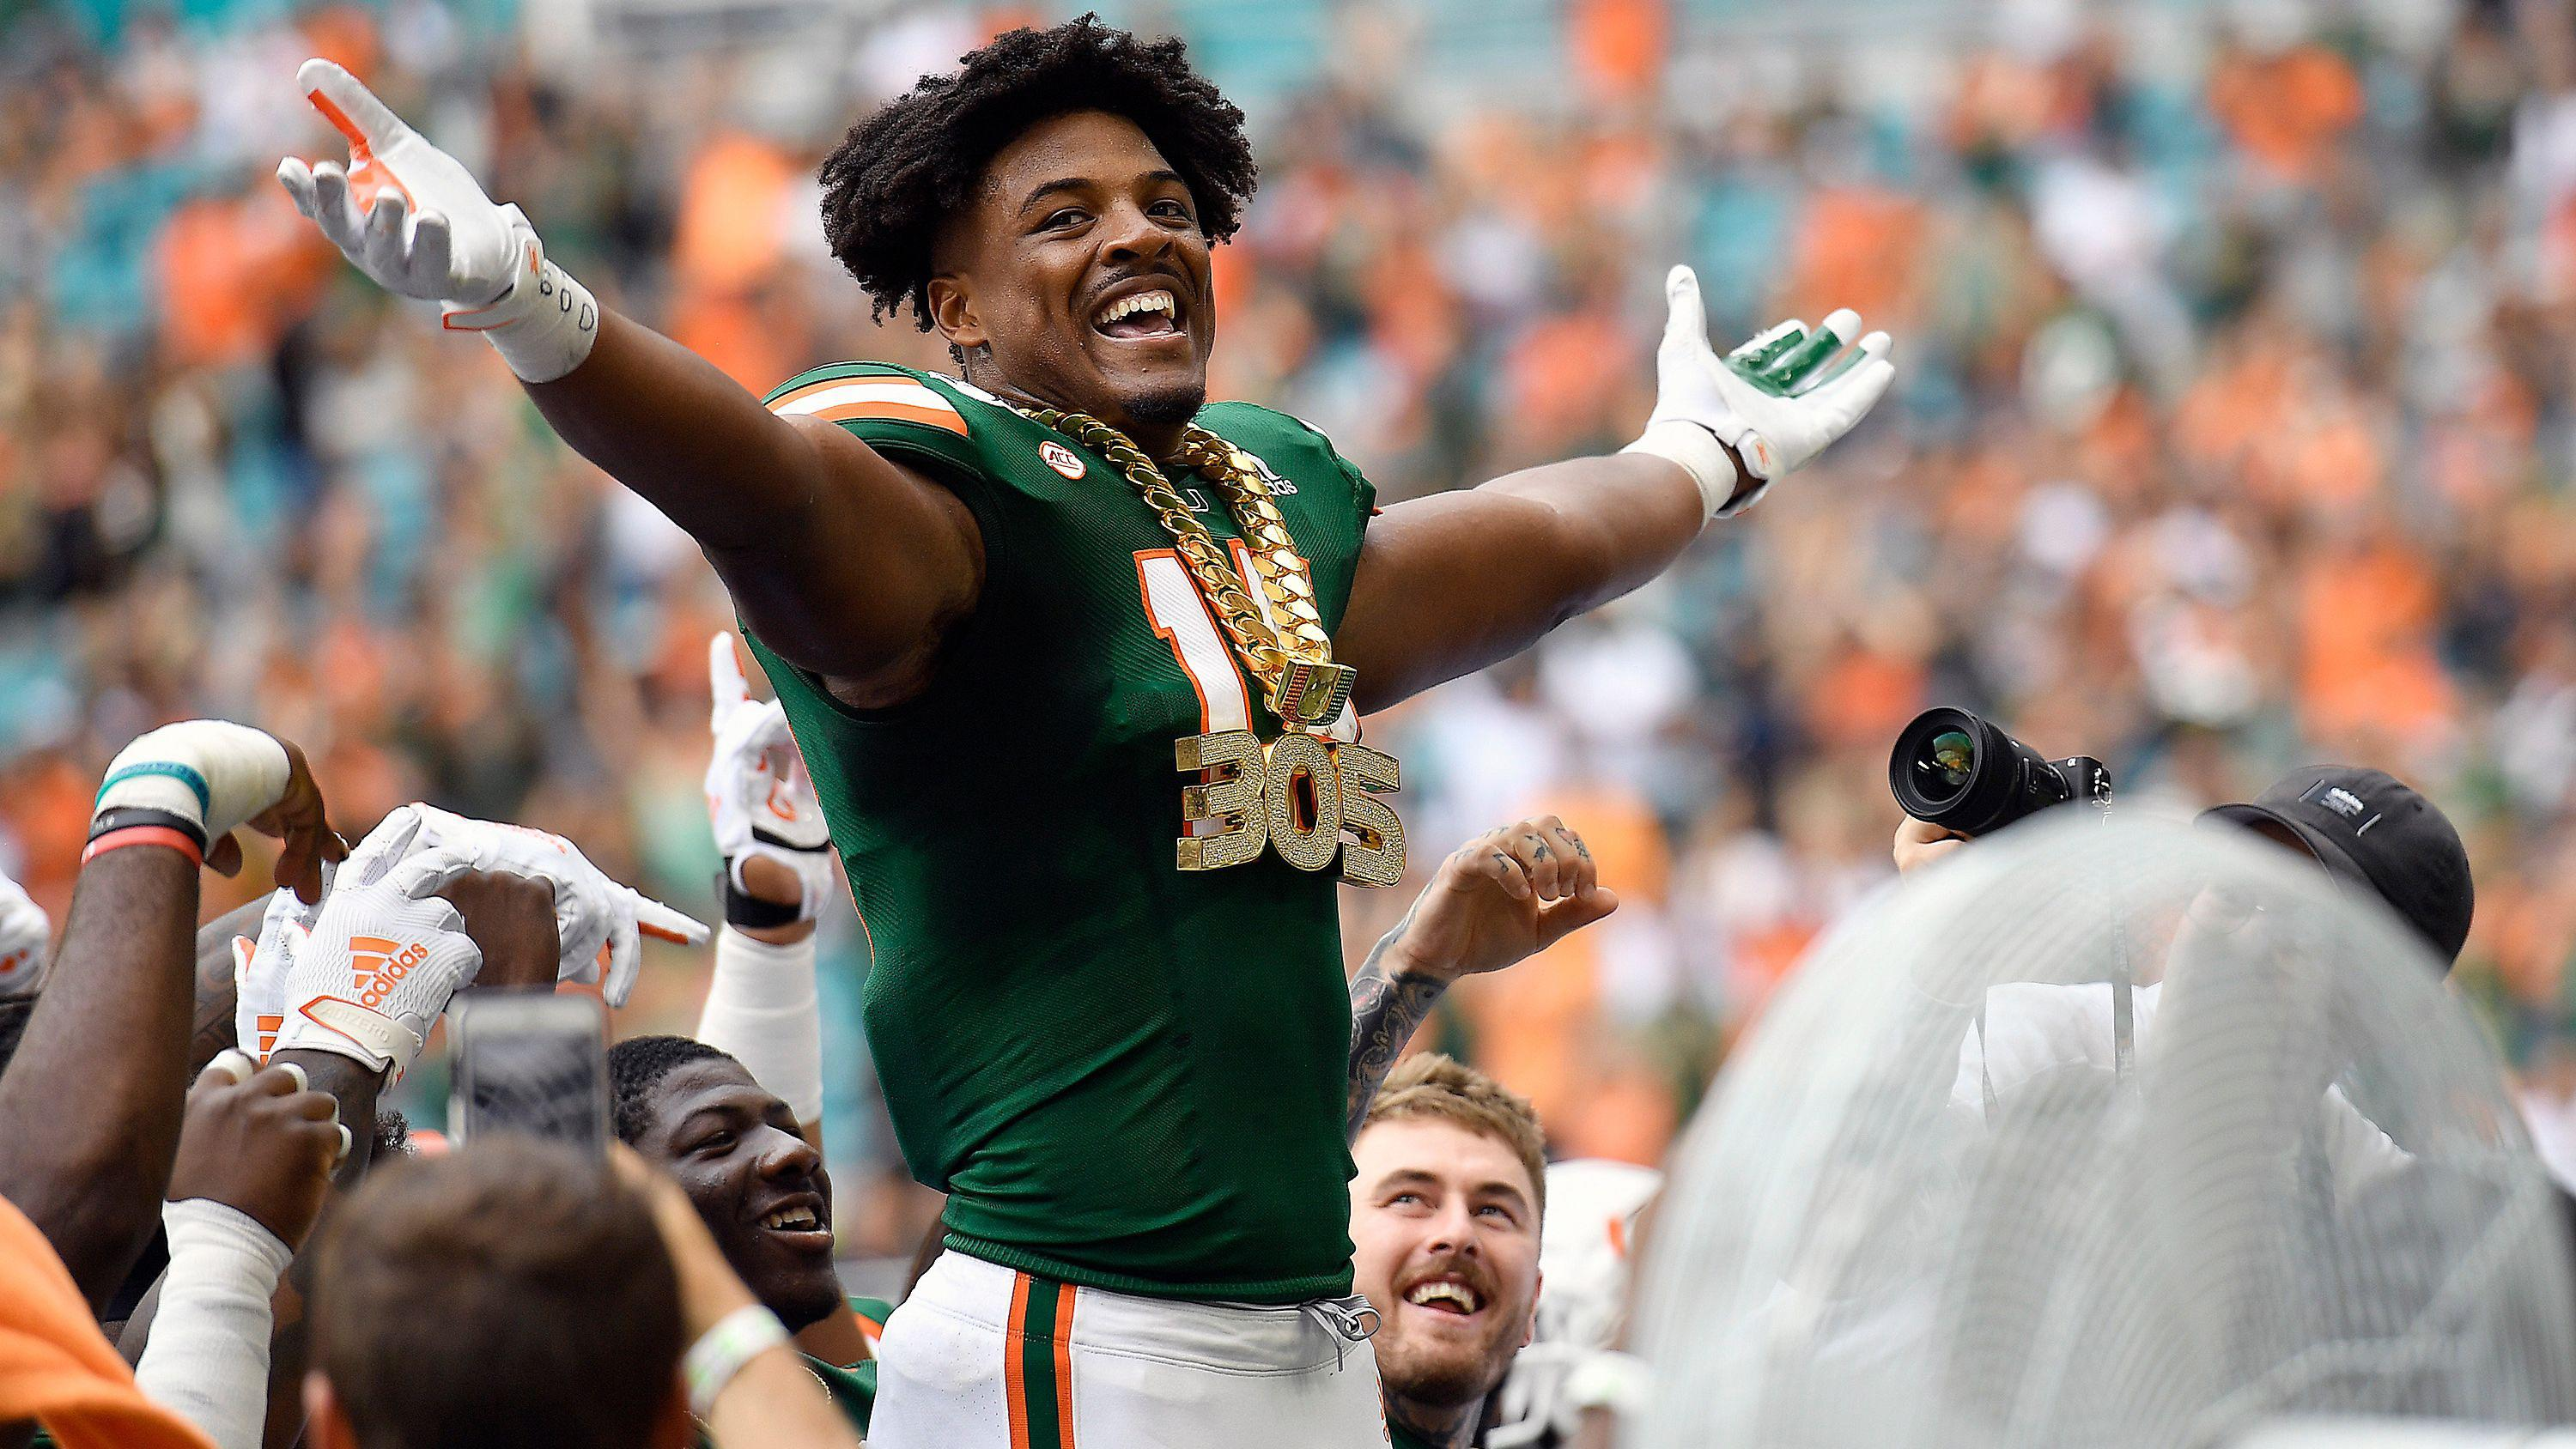 Miami star DE Gregory Rousseau opts out of season